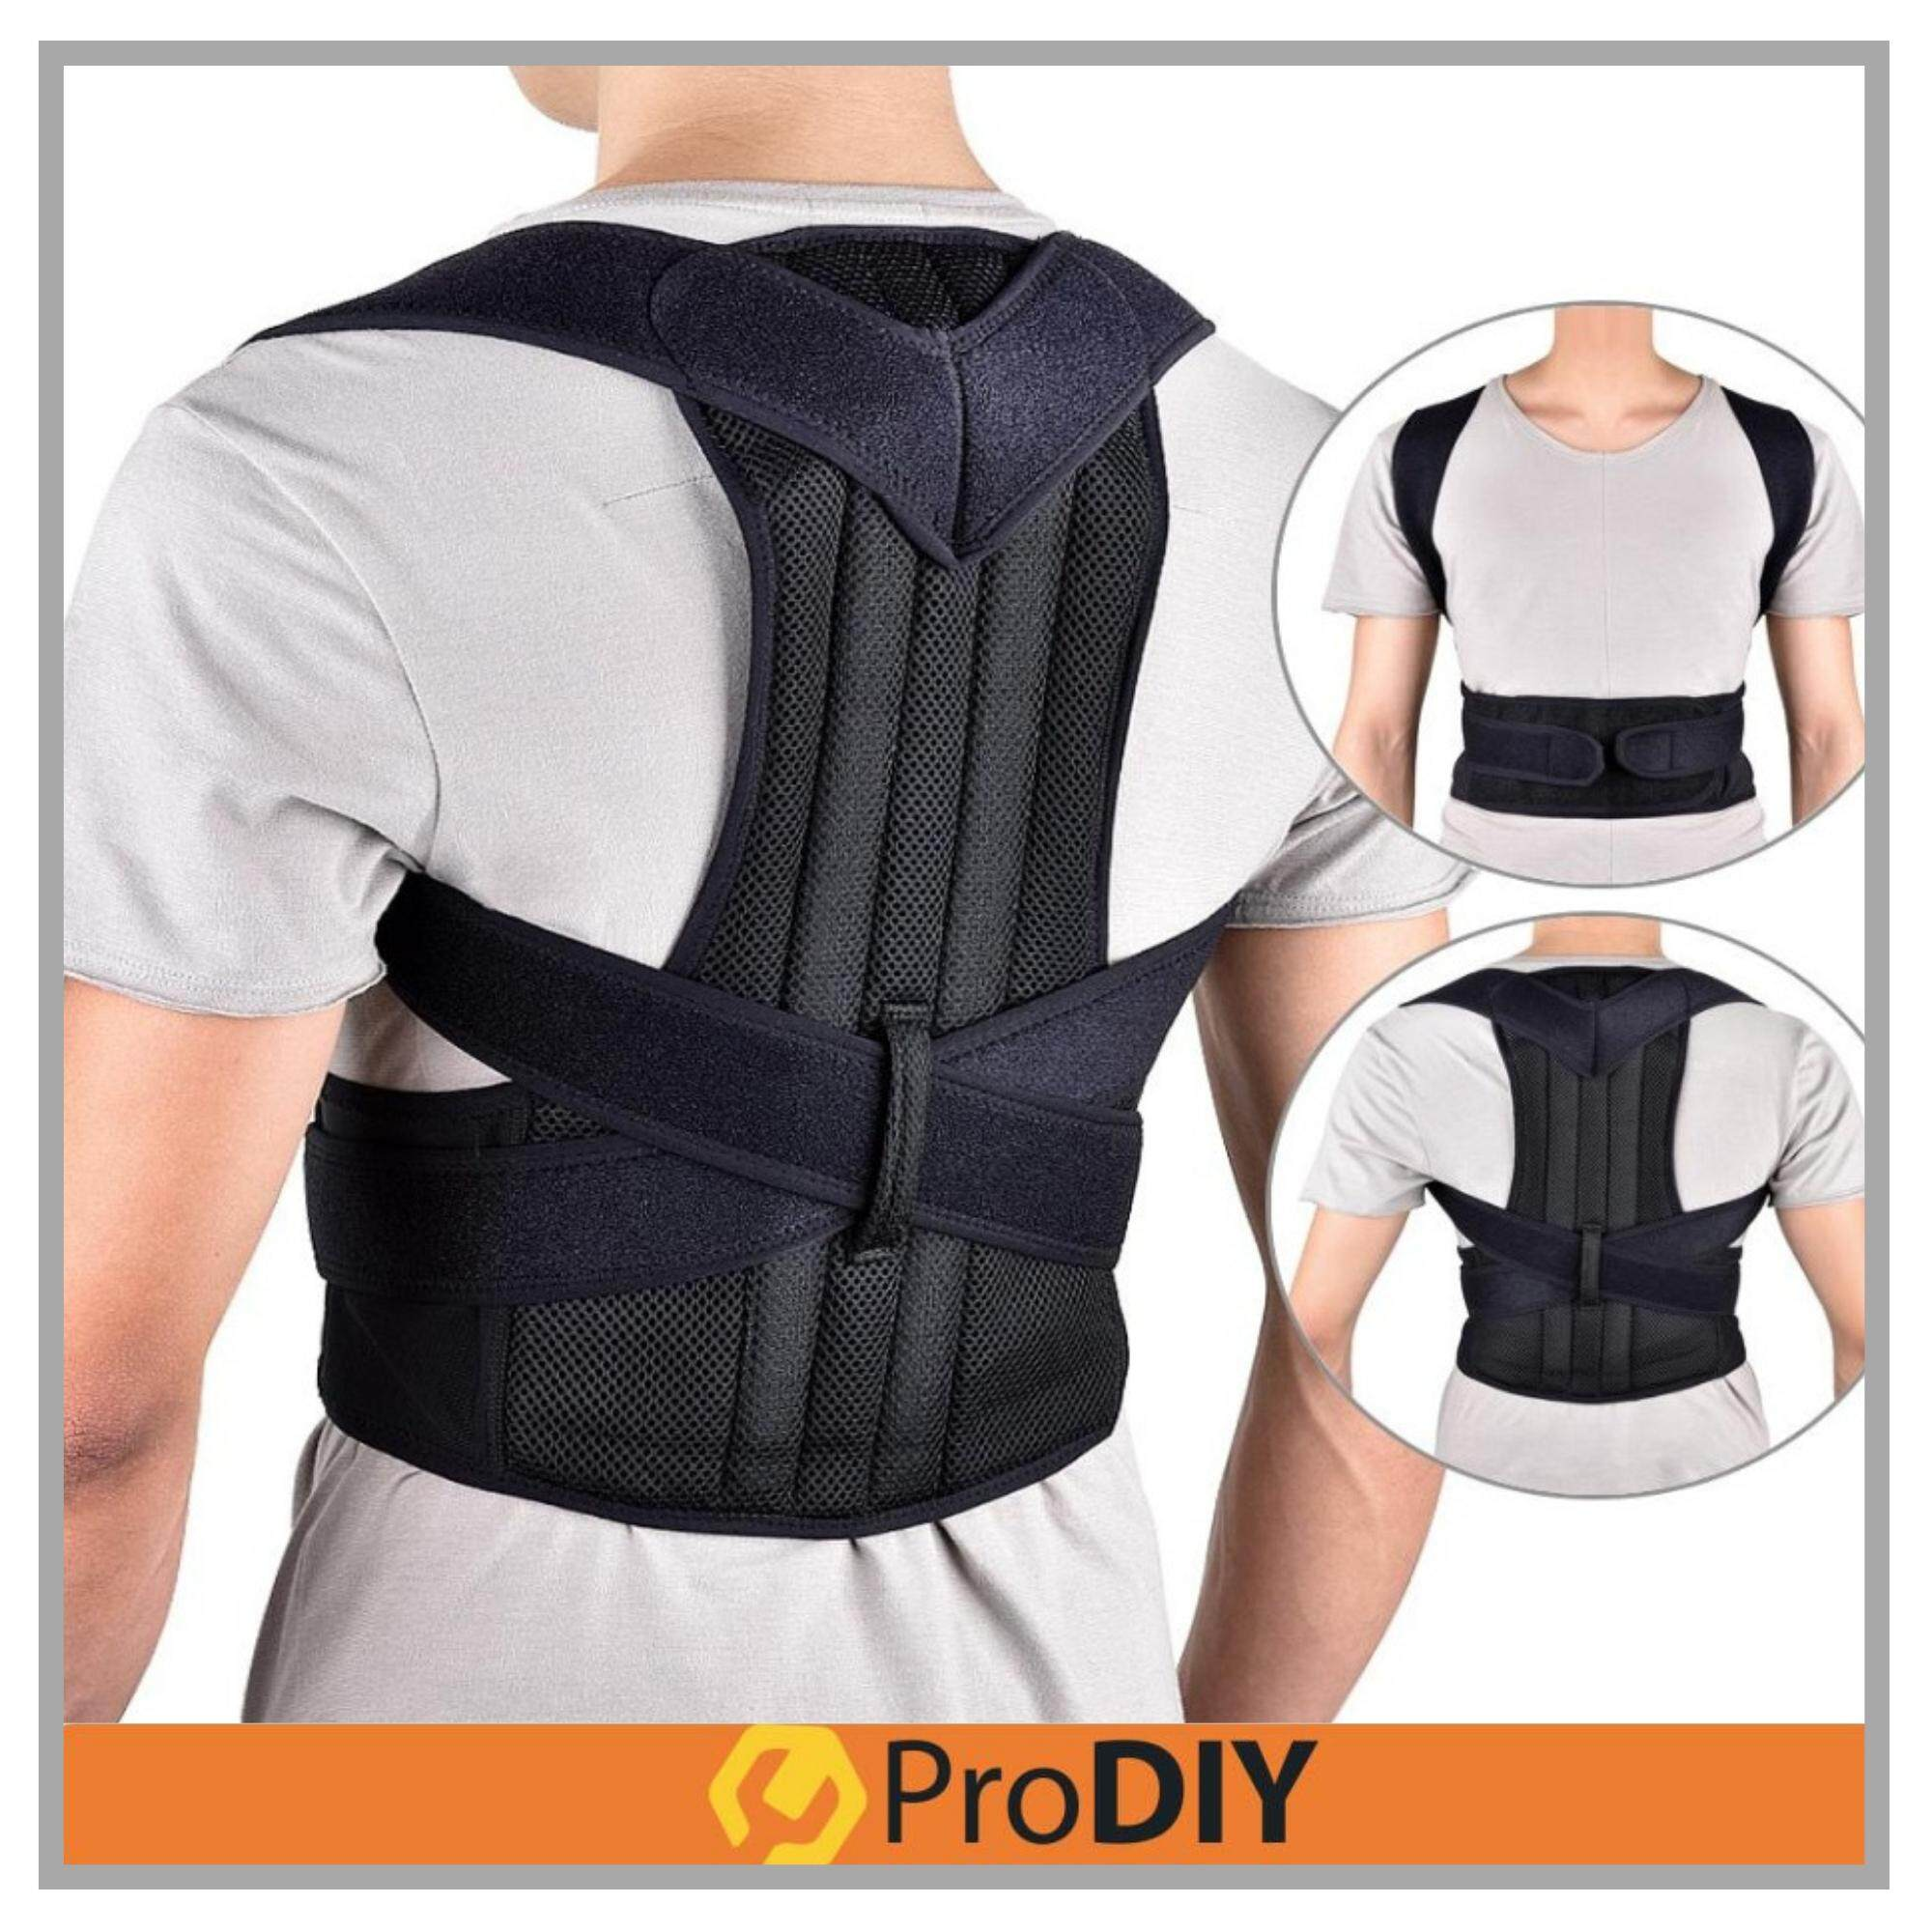 2a7ff9dd45c NY-48 Back Support Posture Shoulder Correction Align Relieve Pain UNISEX  Lifting Belt